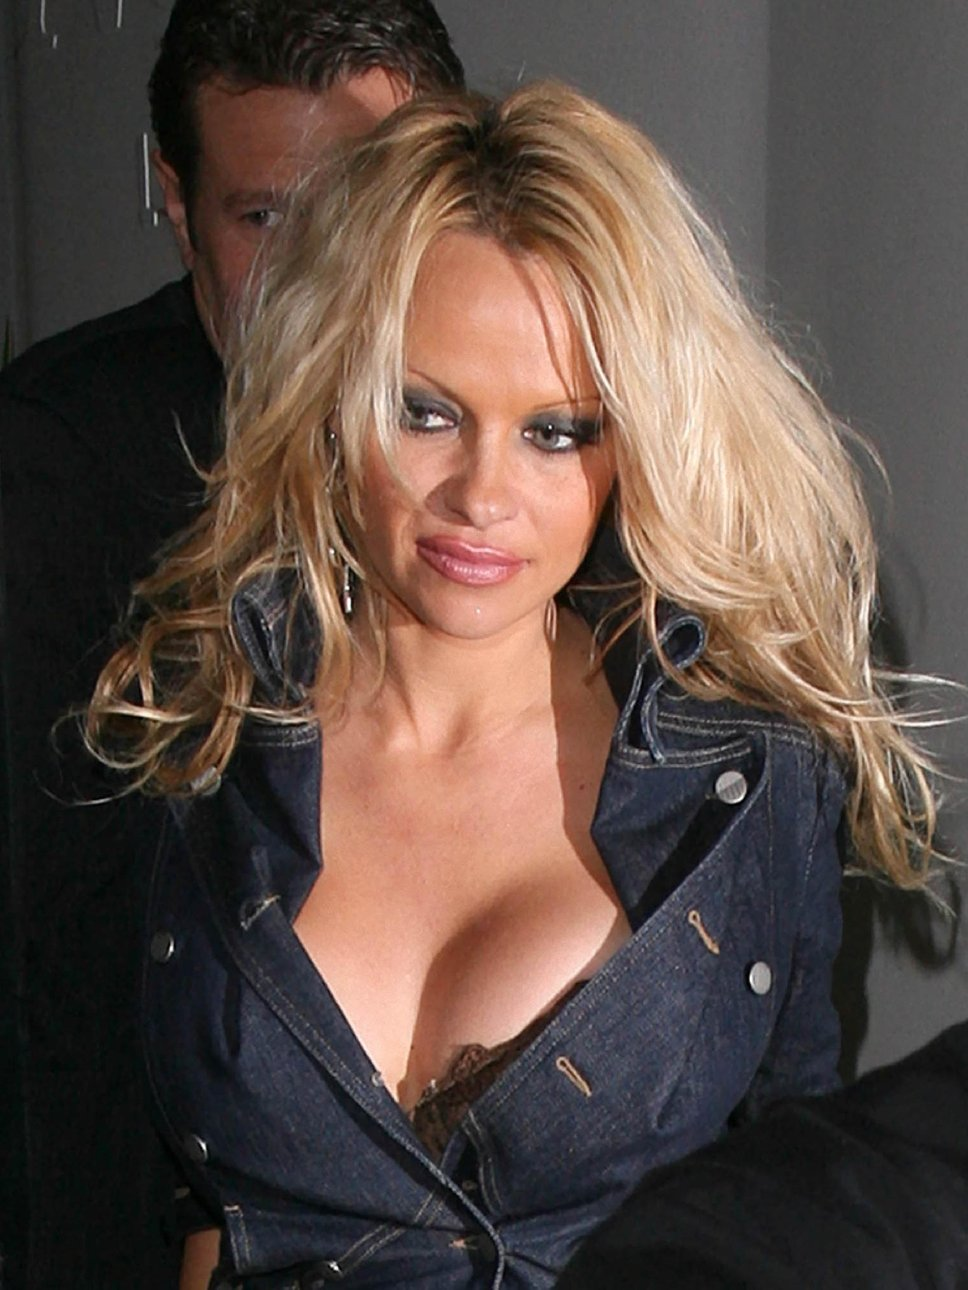 Pamela Anderson Photo and Pictures | Beautiful Women Pics and Sexy Girl